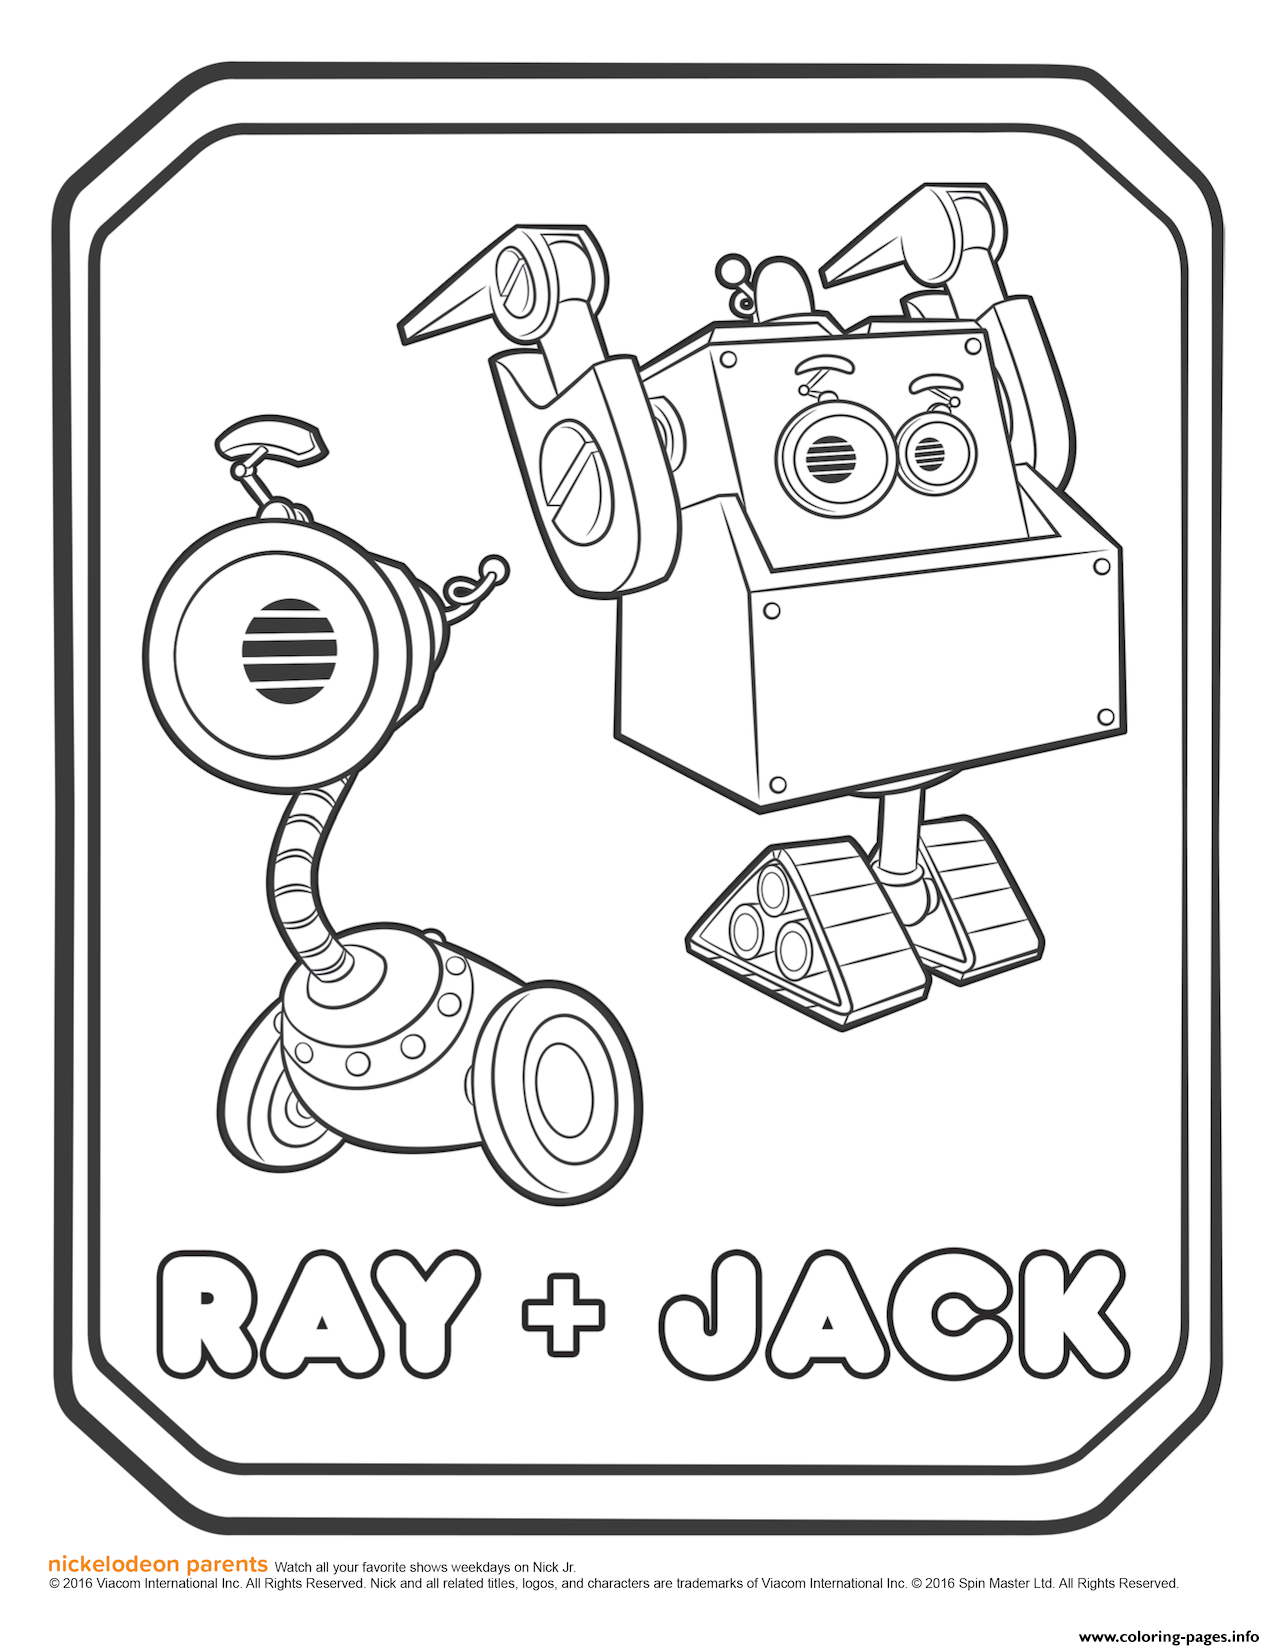 Rusty Rivets Ray And Jack Coloring Page Coloring Pages Printable